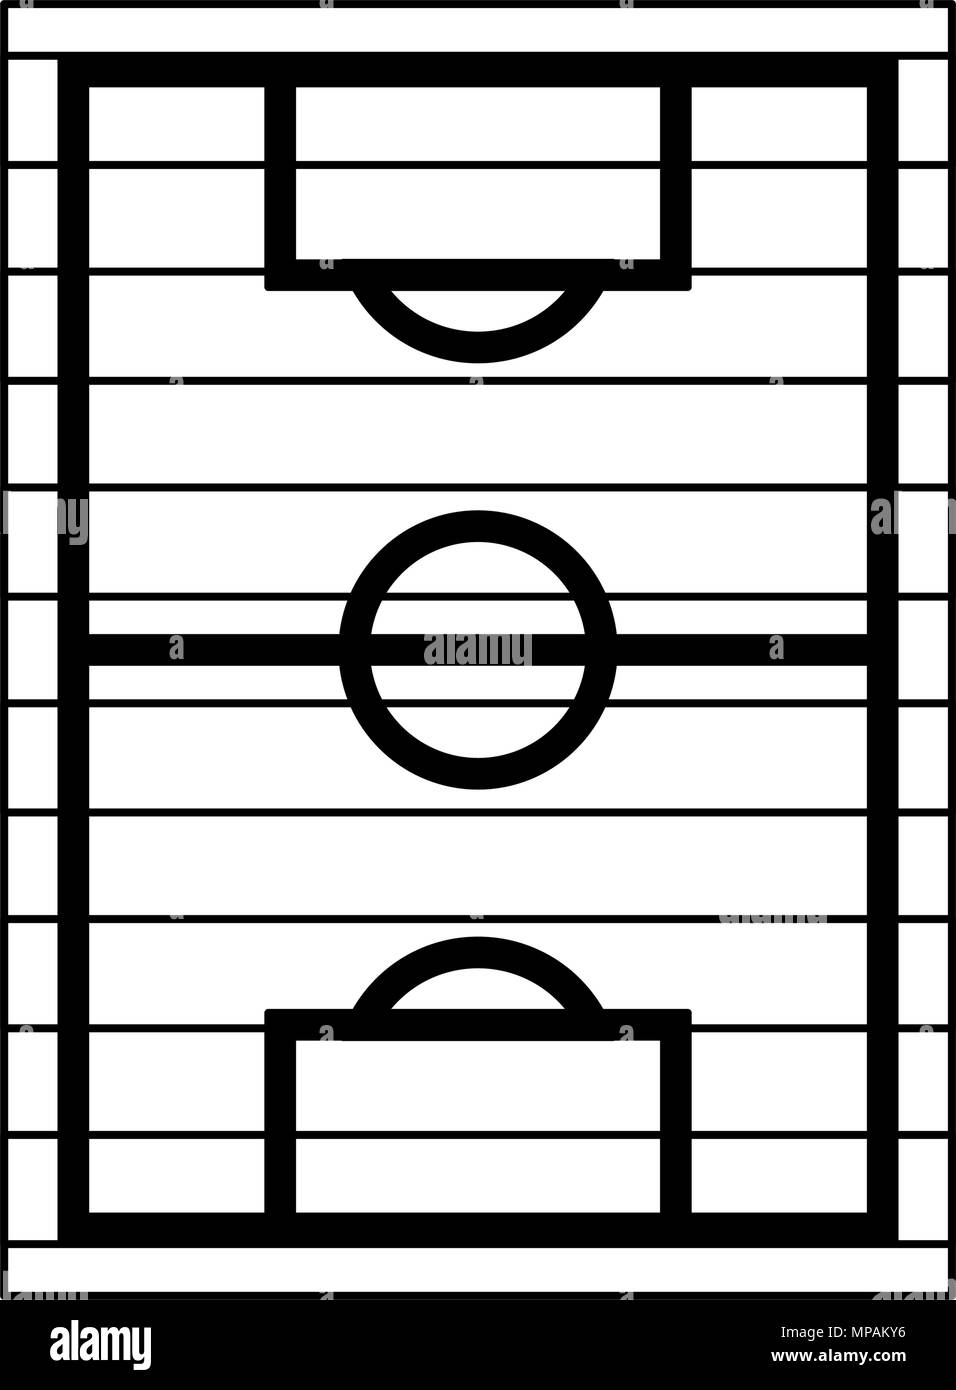 Soccer Field Topview In Black And White Colors Stock Vector